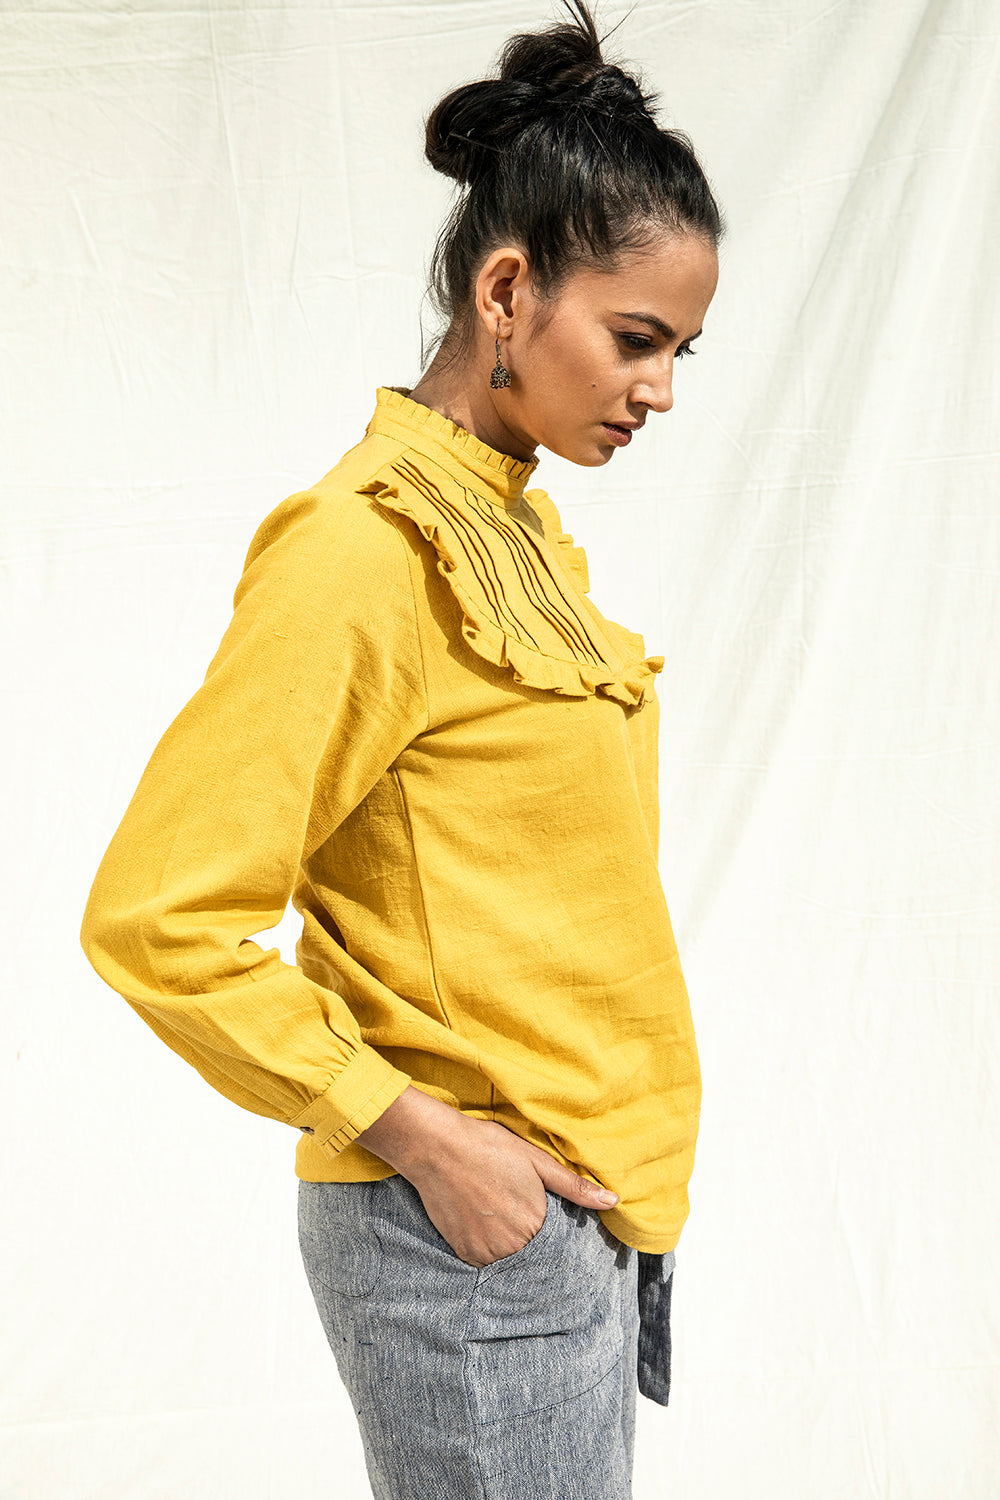 Organic Cotton Clothing for Women by Lake Peace. Yellow Full Sleeve Top with Frill Detail at Yoke.